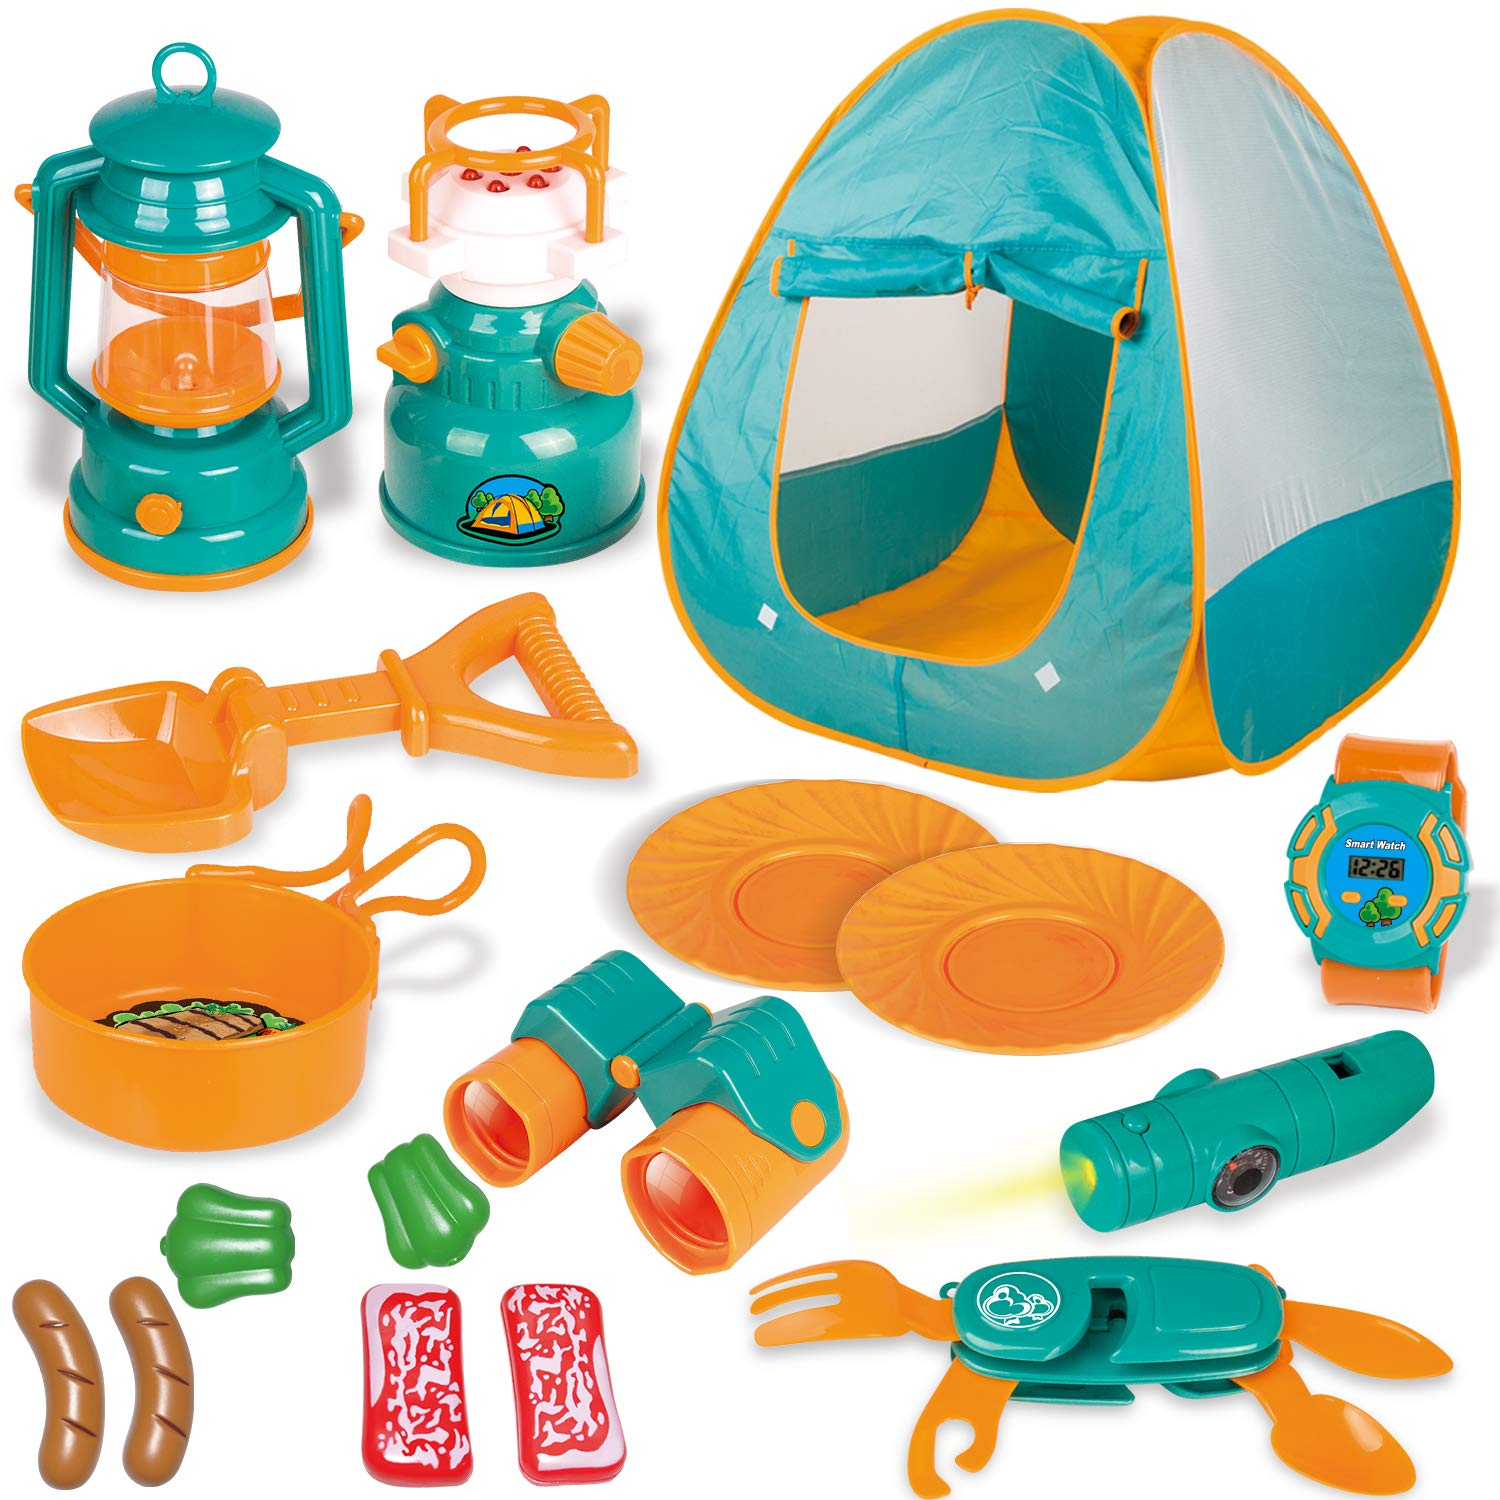 FUN LITTLE TOYS Kids Play Tent, Pop Up Tent with Kids Camping Gear Set, Outdoor Toys Camping Tools Set for Kids, 18 Pieces giá tốt nhất 2020 | FPT Shop